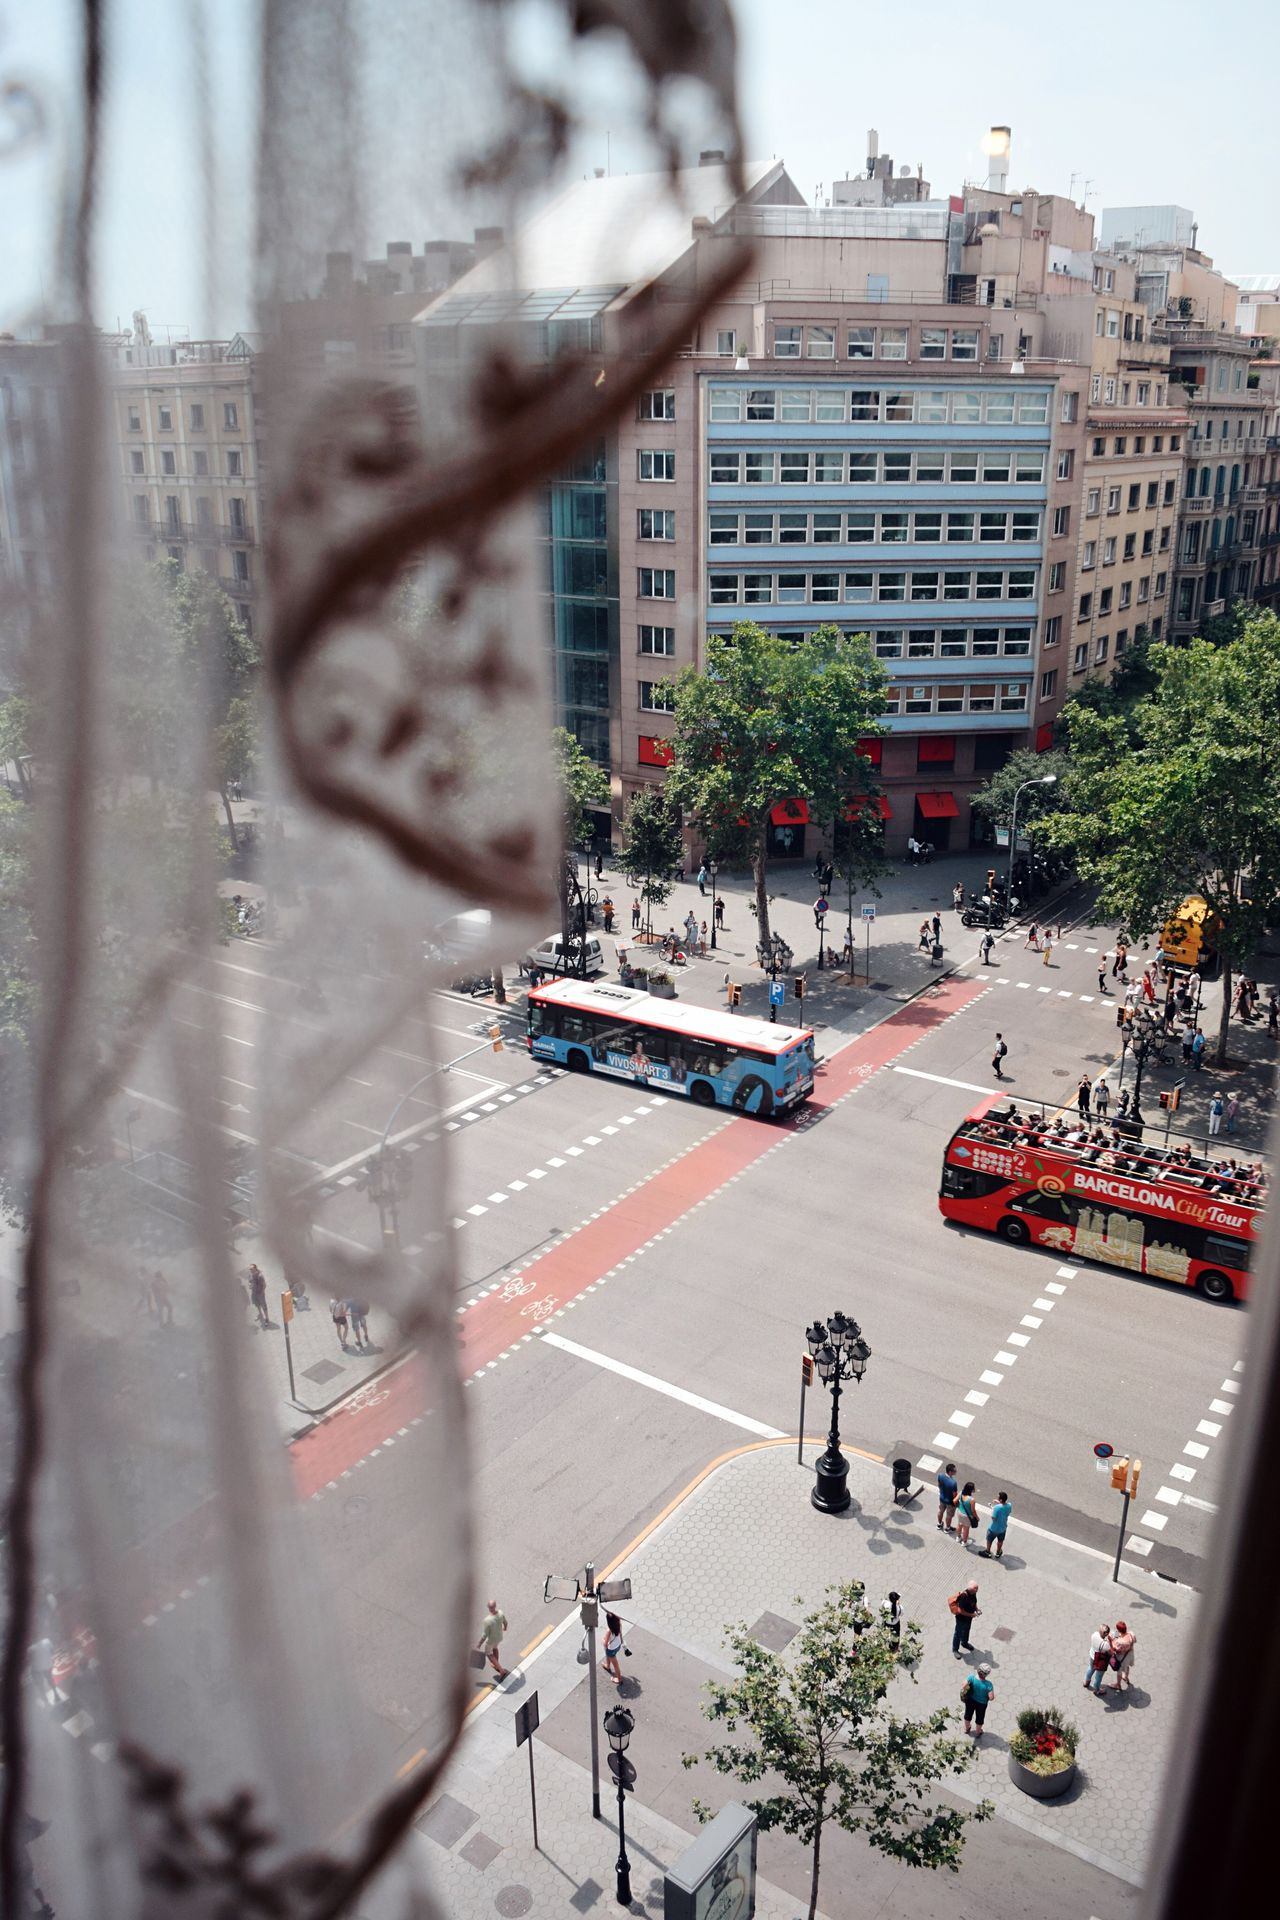 Barcelona Architecture Building Exterior Built Structure City Car Street Road City Street Transportation Mode Of Transport Tree Land Vehicle City Life Day Large Group Of People Outdoors Real People People Traffic Bus Curtain Romantic